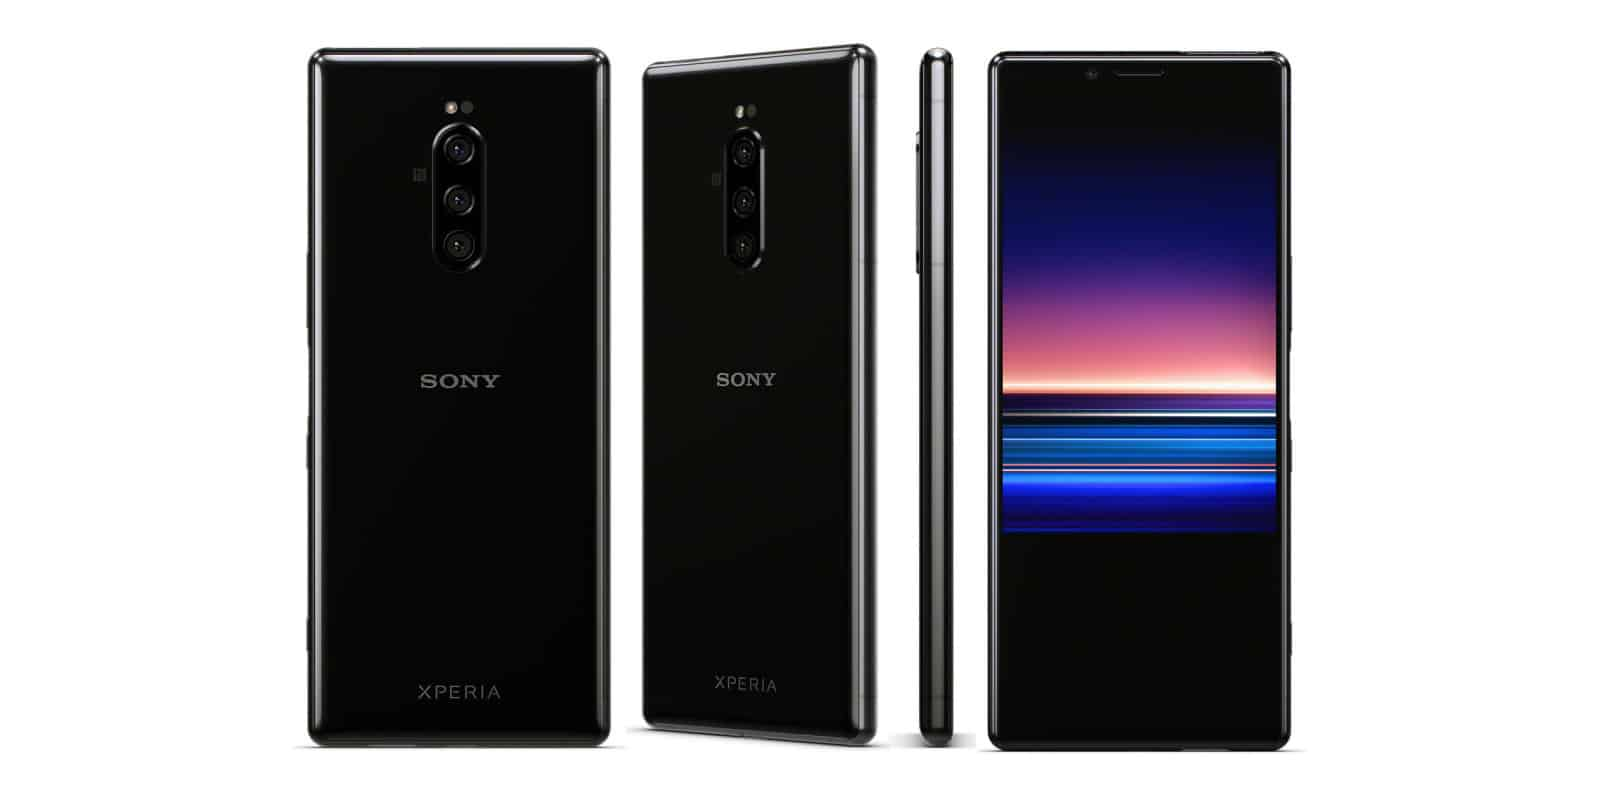 Sony starts innovative with its xperia 1 flagship with 21:9 cinematic 4k oled screen & triple digital cameras